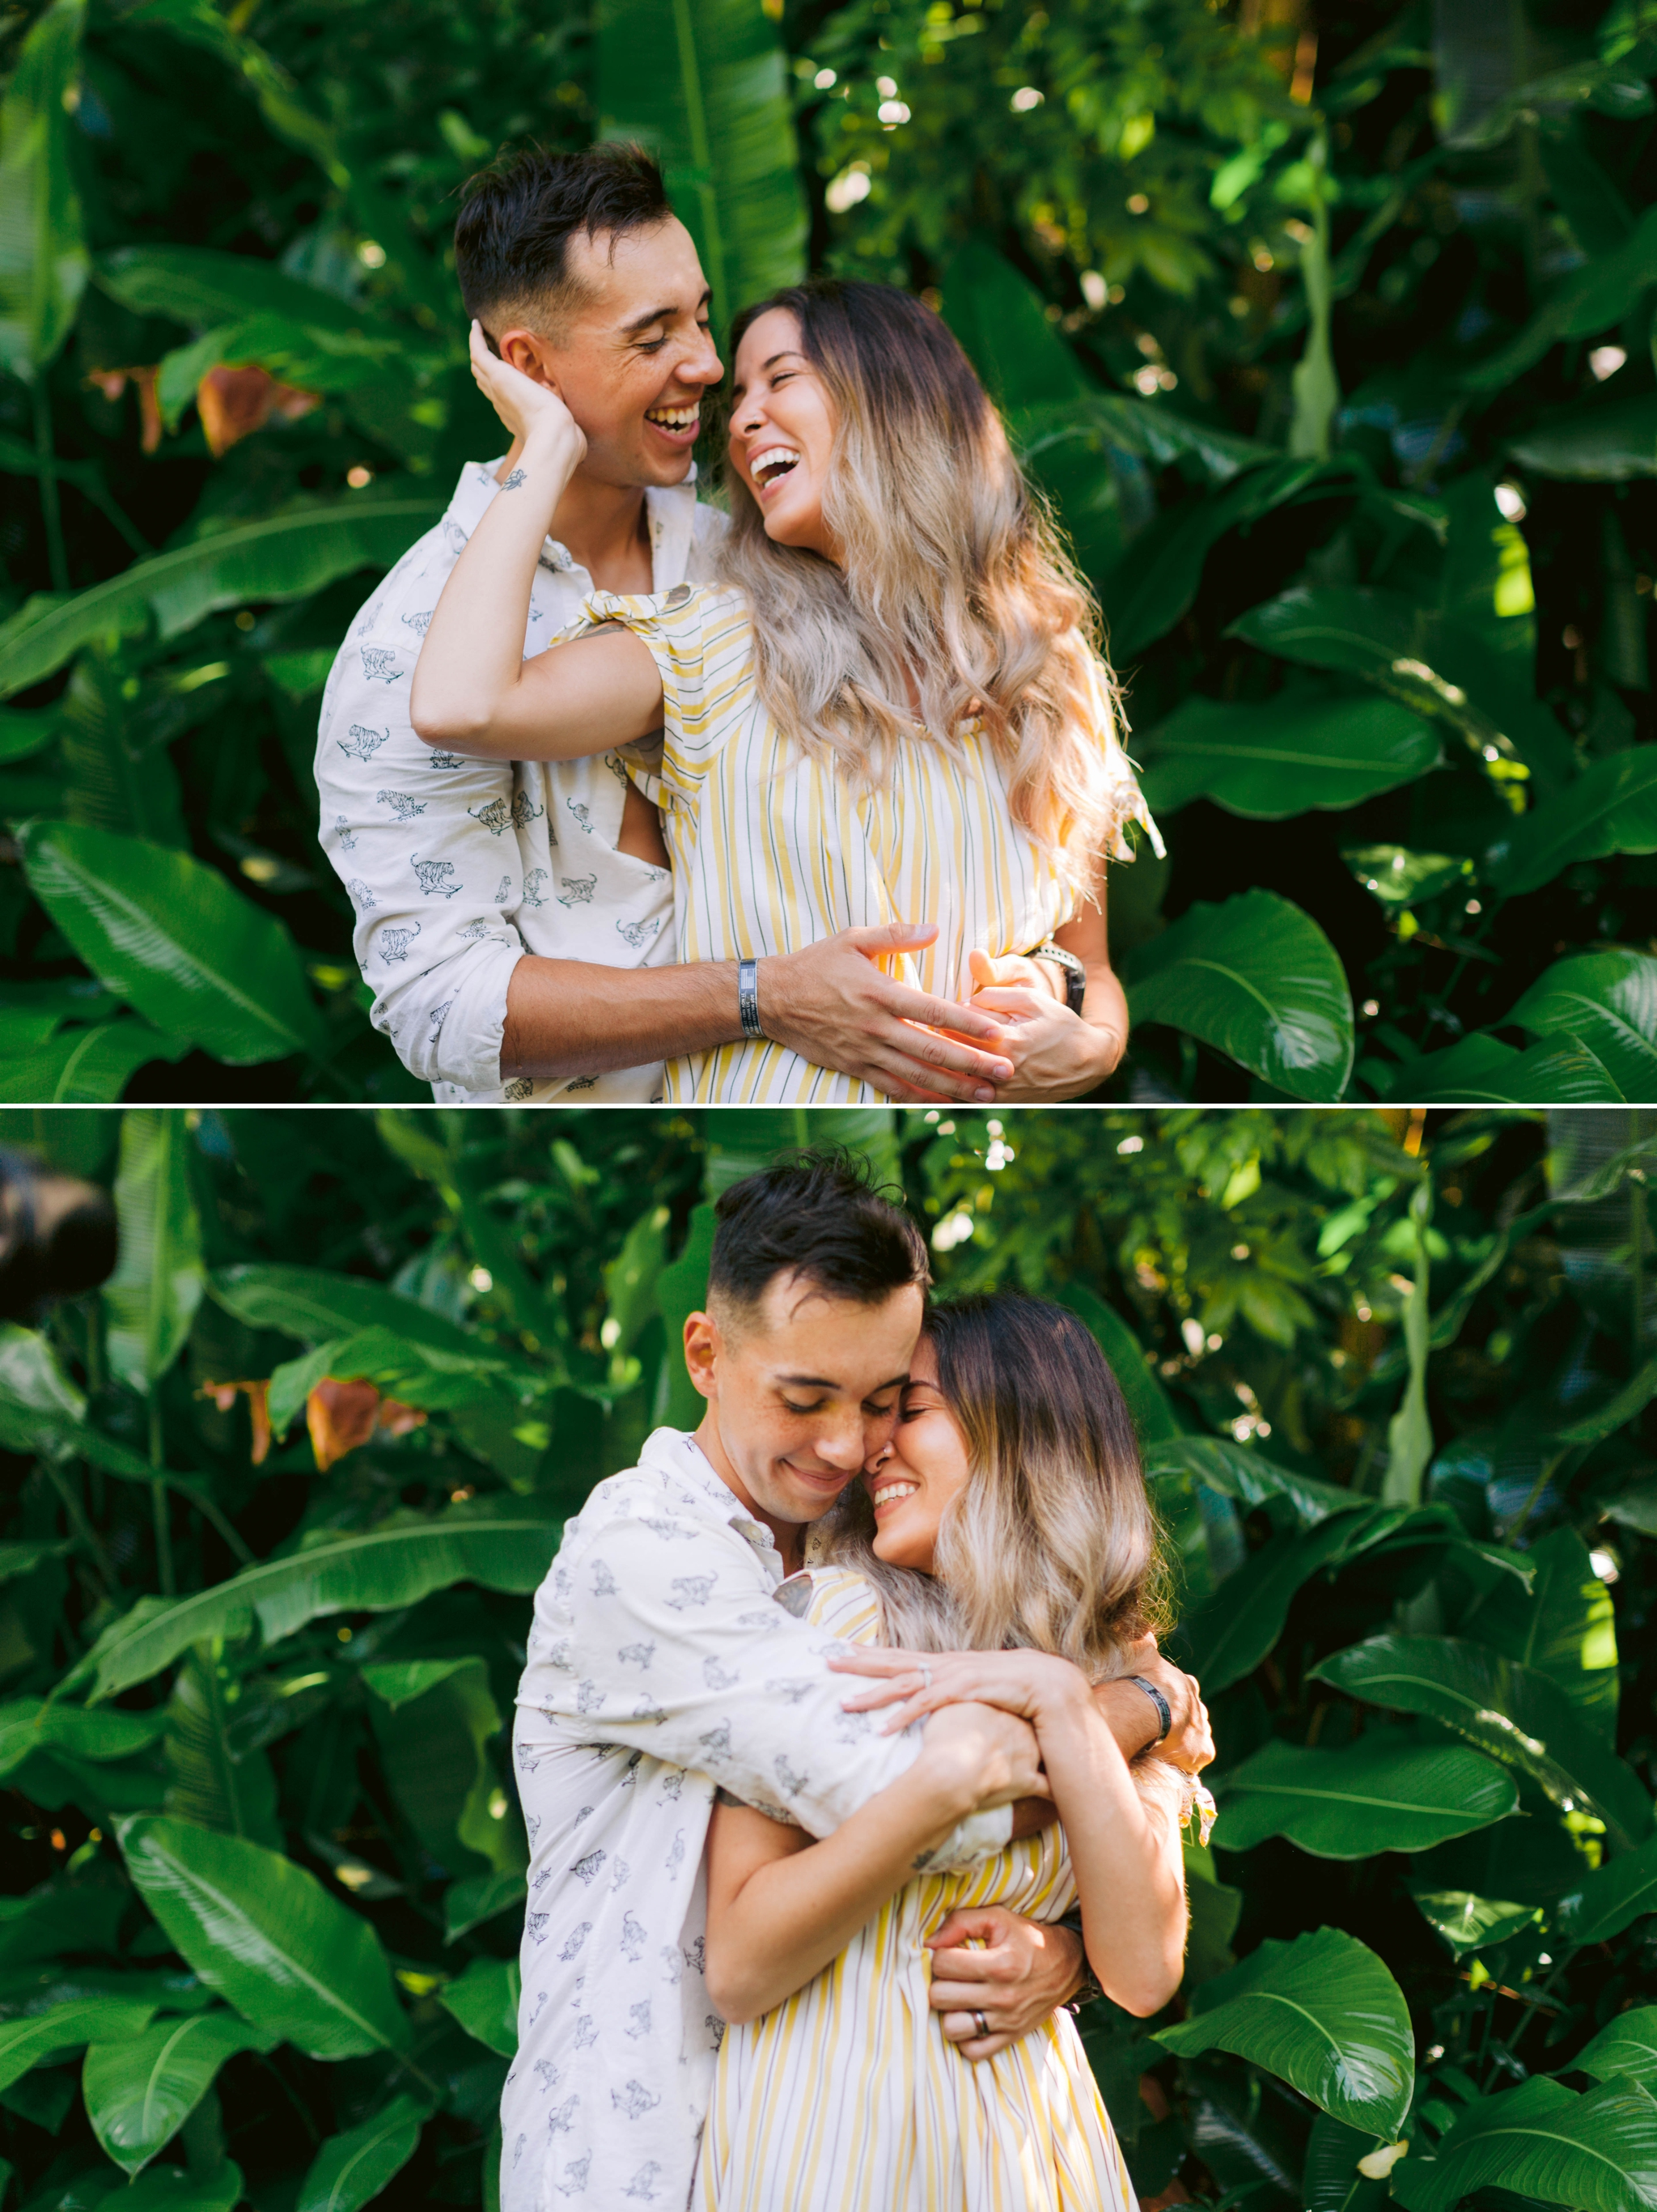 Adventure Couples Session - North Shore, Oahu, Hawaii Engagement Photographer - Johanna Dye